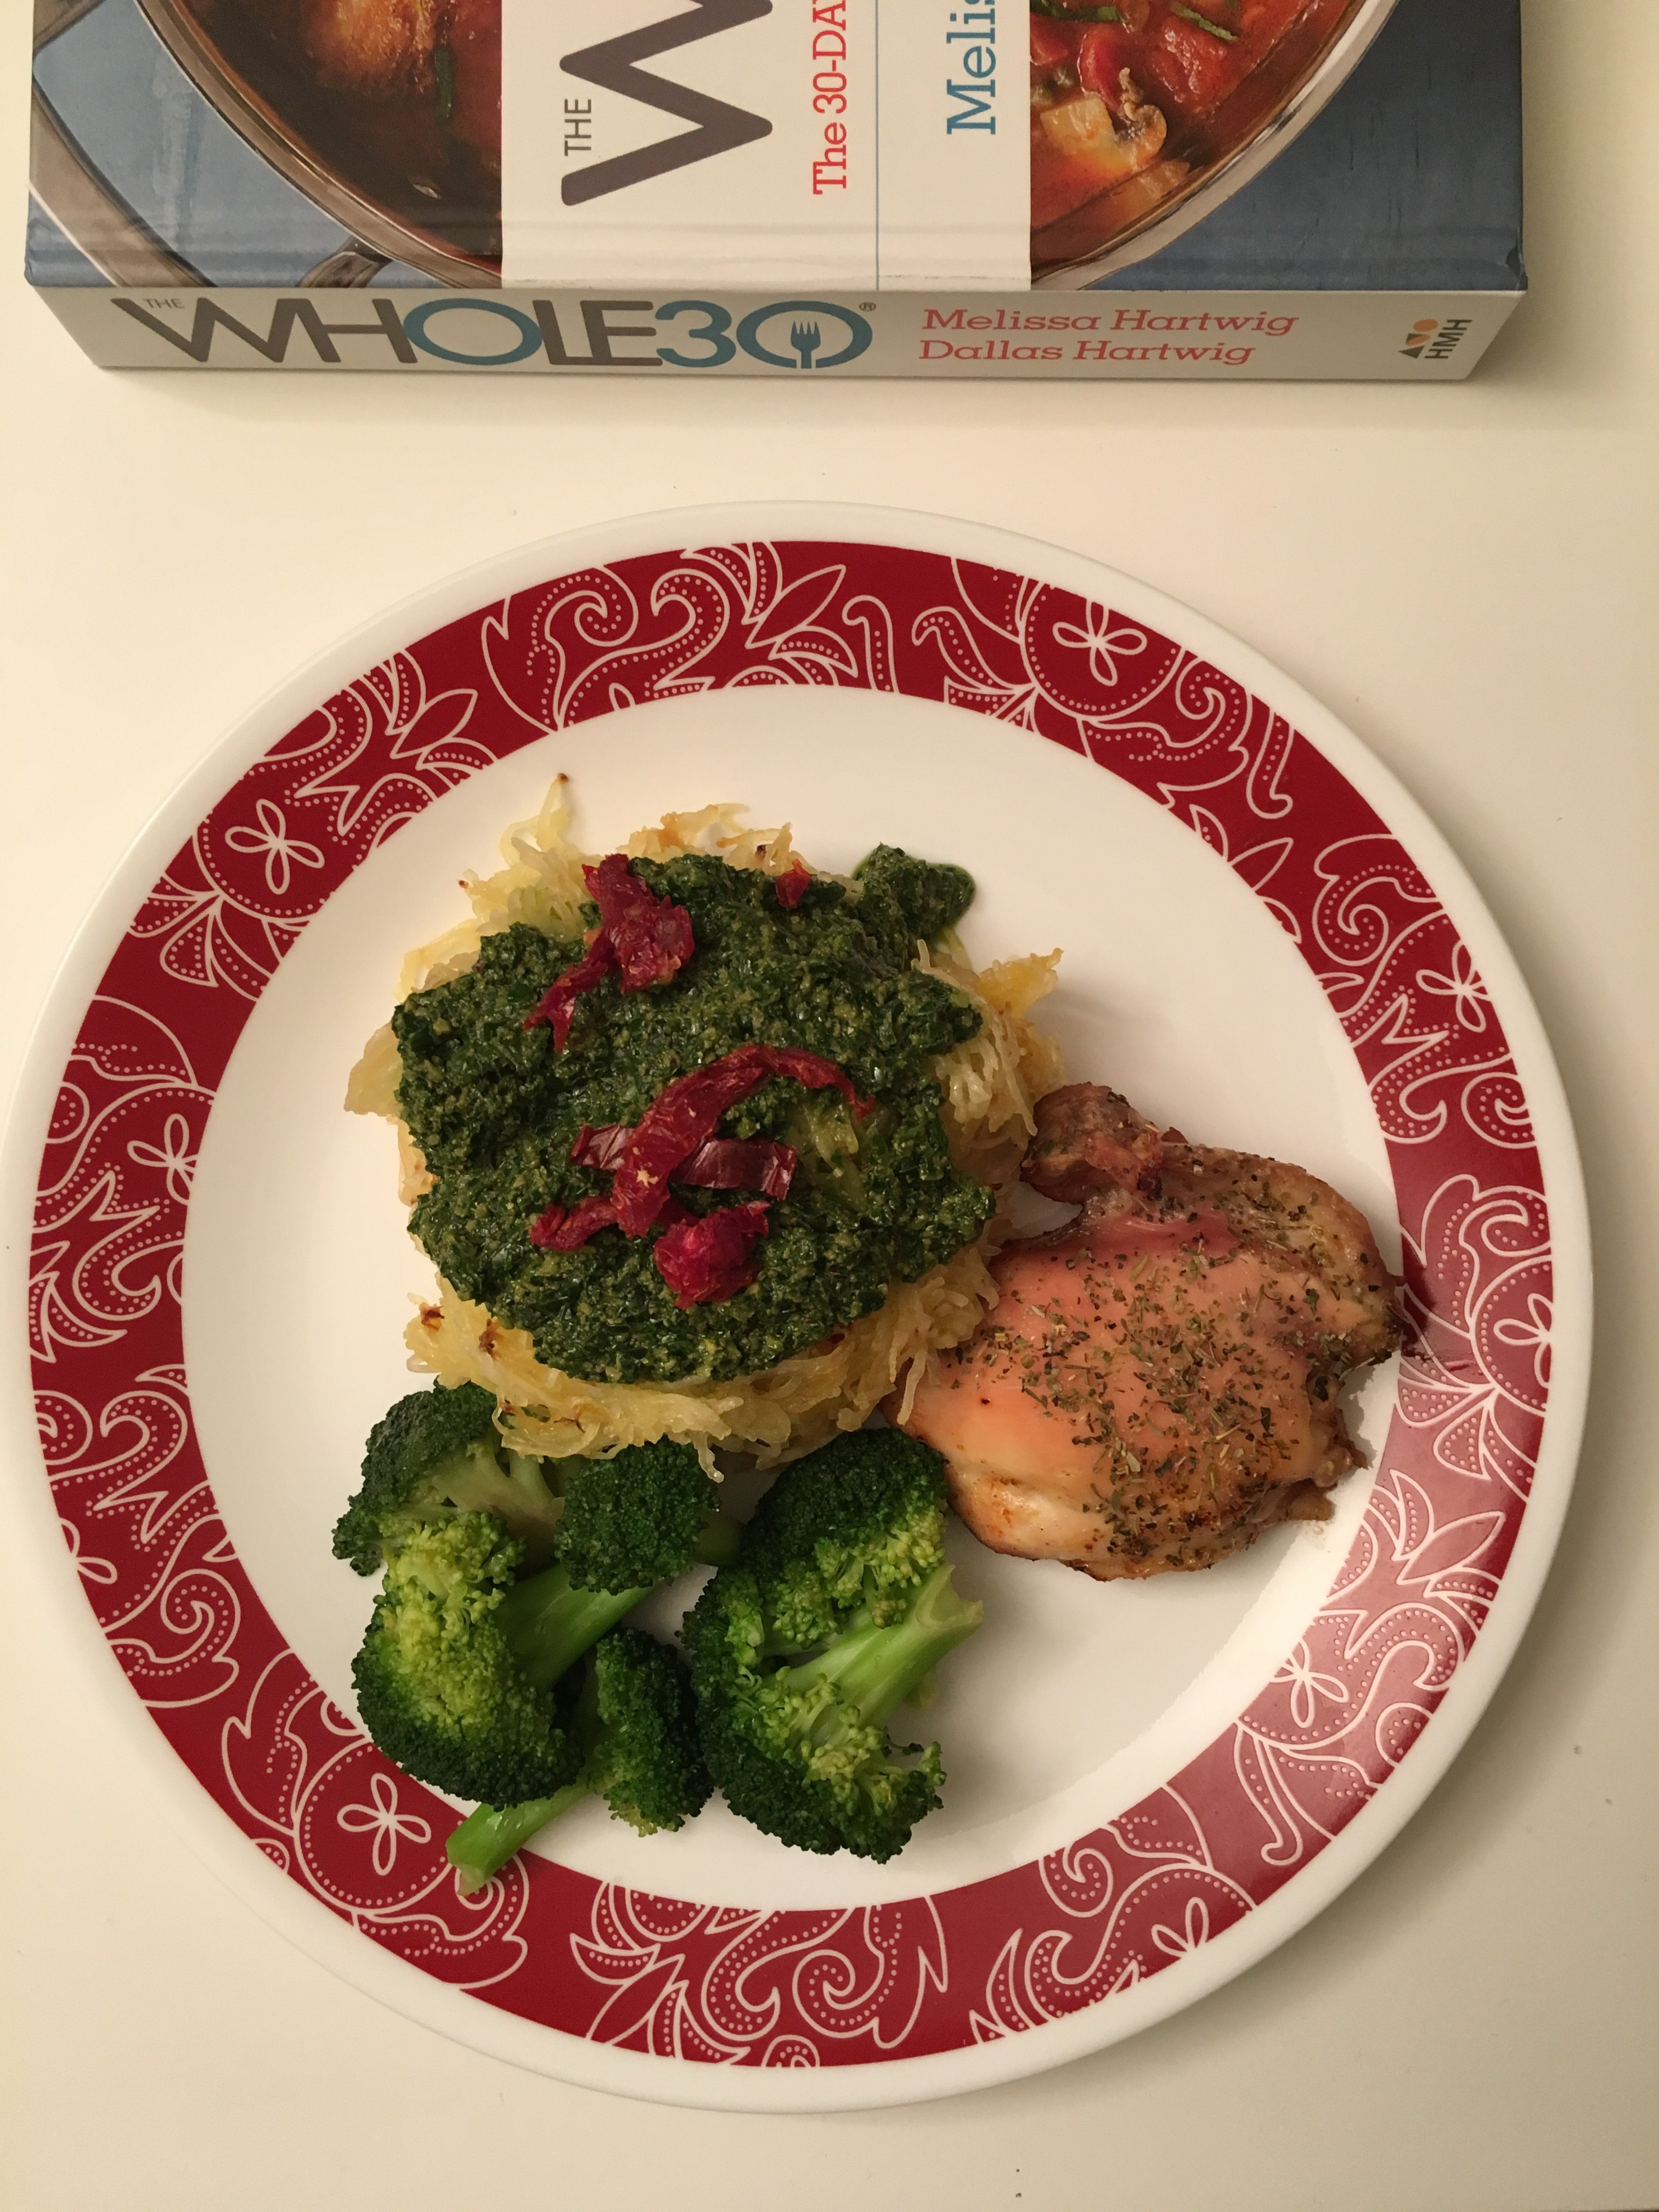 Whole 30 Approved Meal: Spaghetti Squash with Pesto & Baked Chicken Thighs